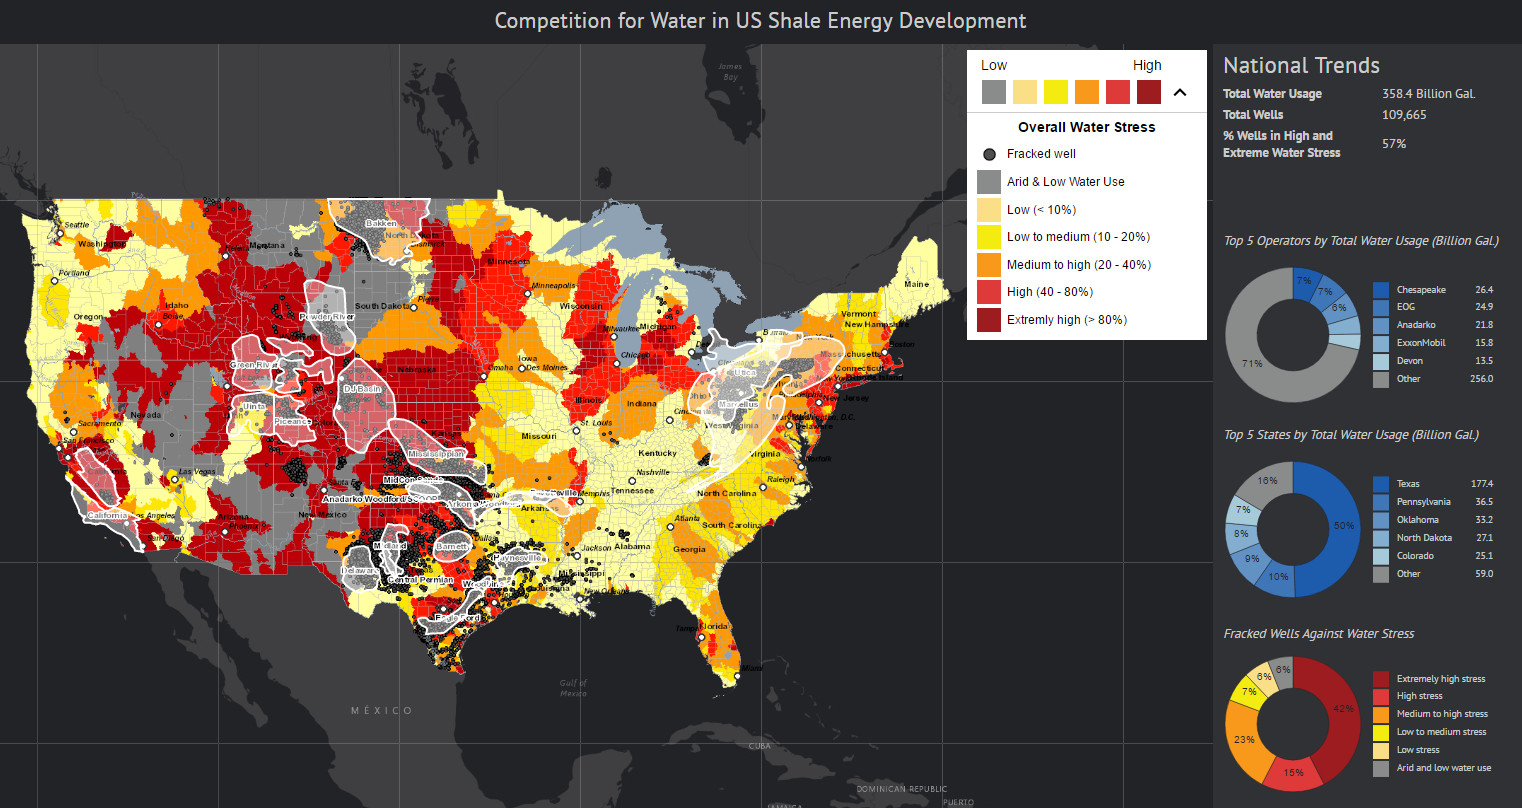 Competition for Water in U.S. Shale Energy Development